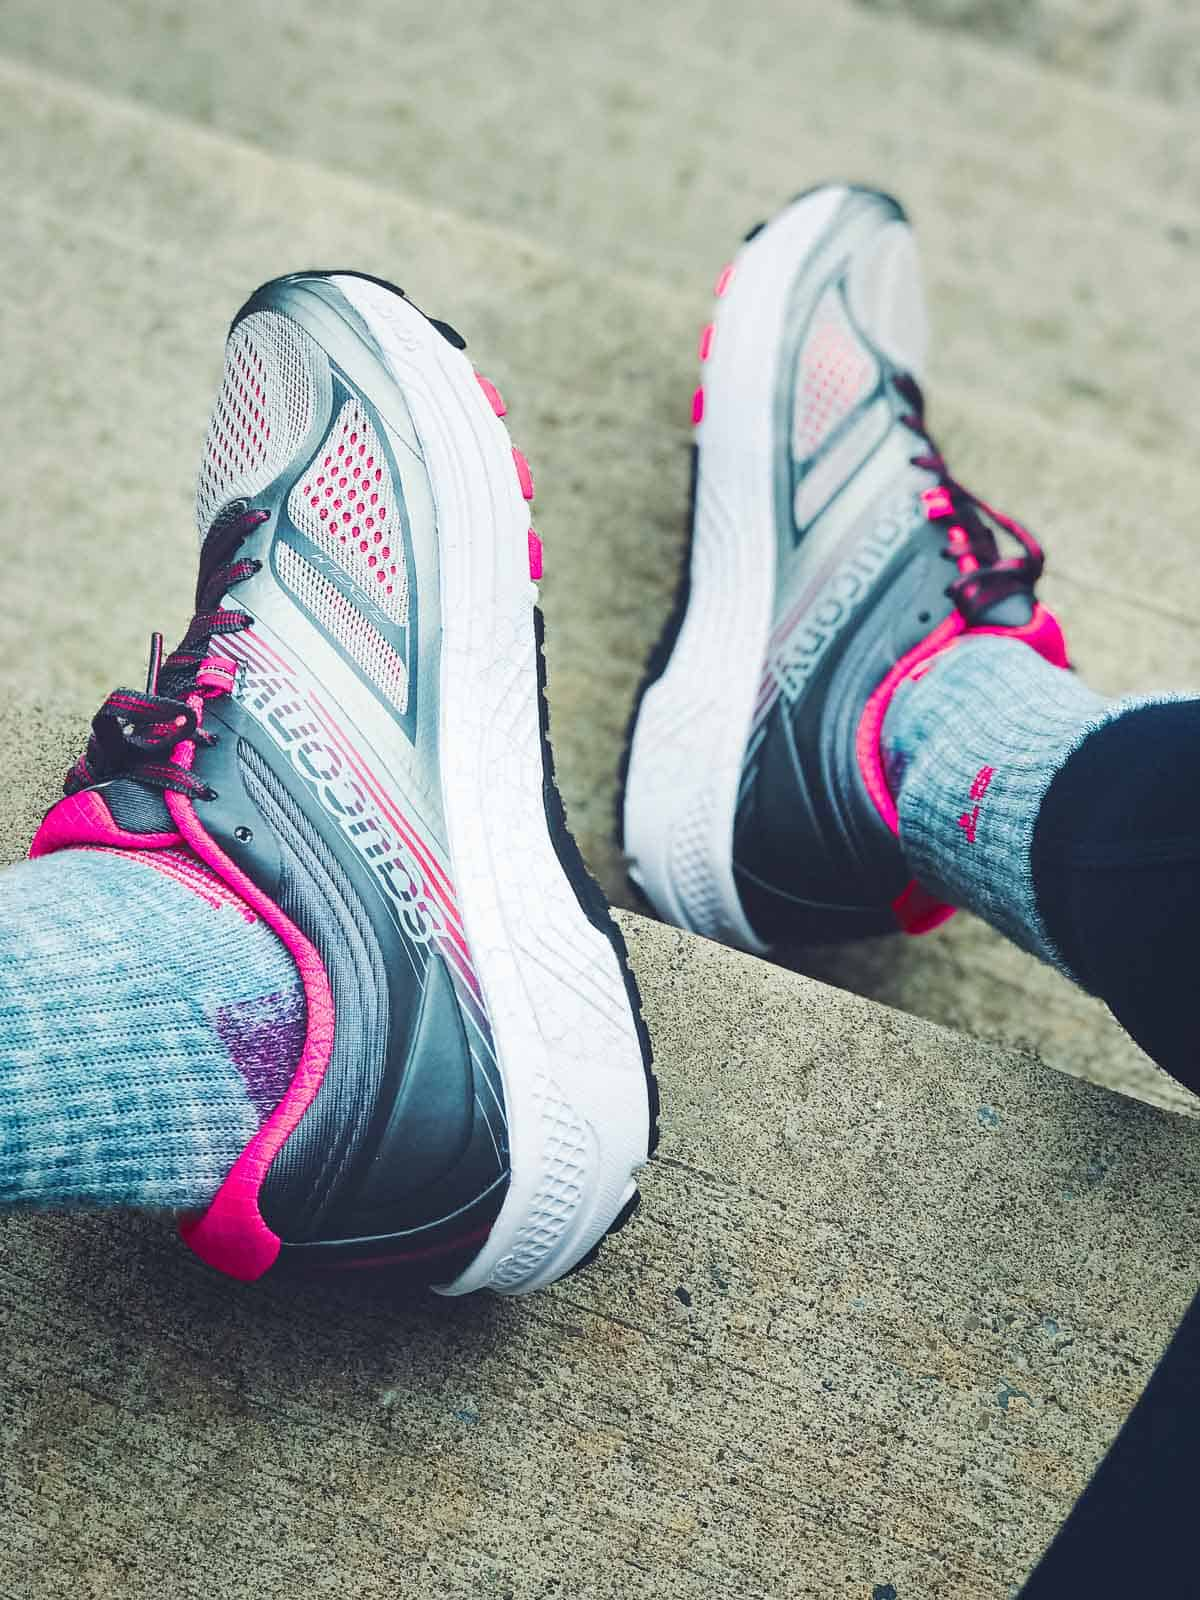 The Saucony Guide 10 is the perfect light stability running shoe.